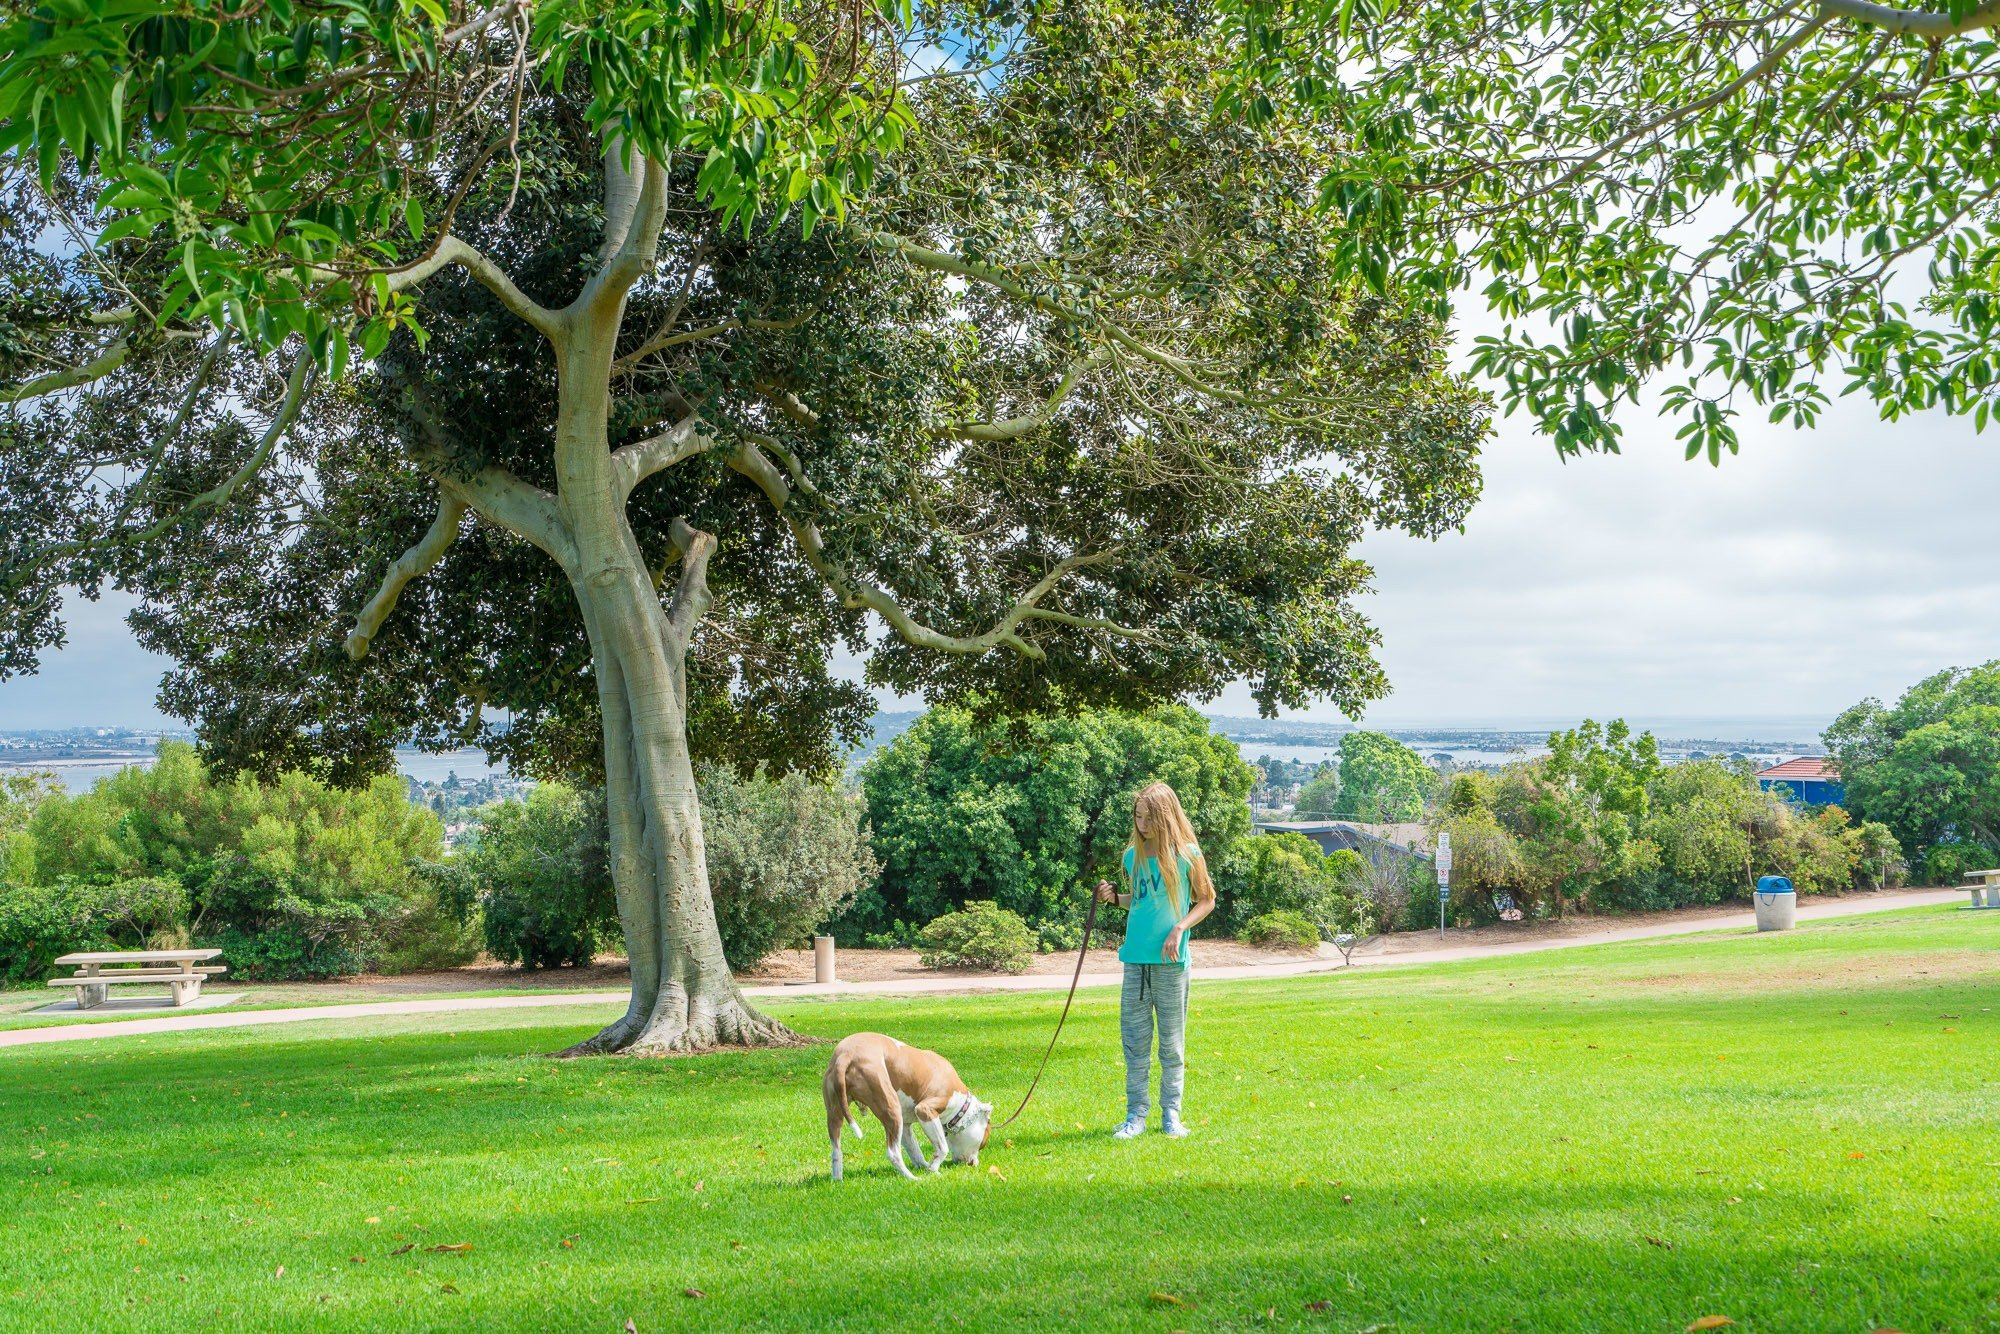 Walking the dog at Kate Sessions Park in La Jolla.